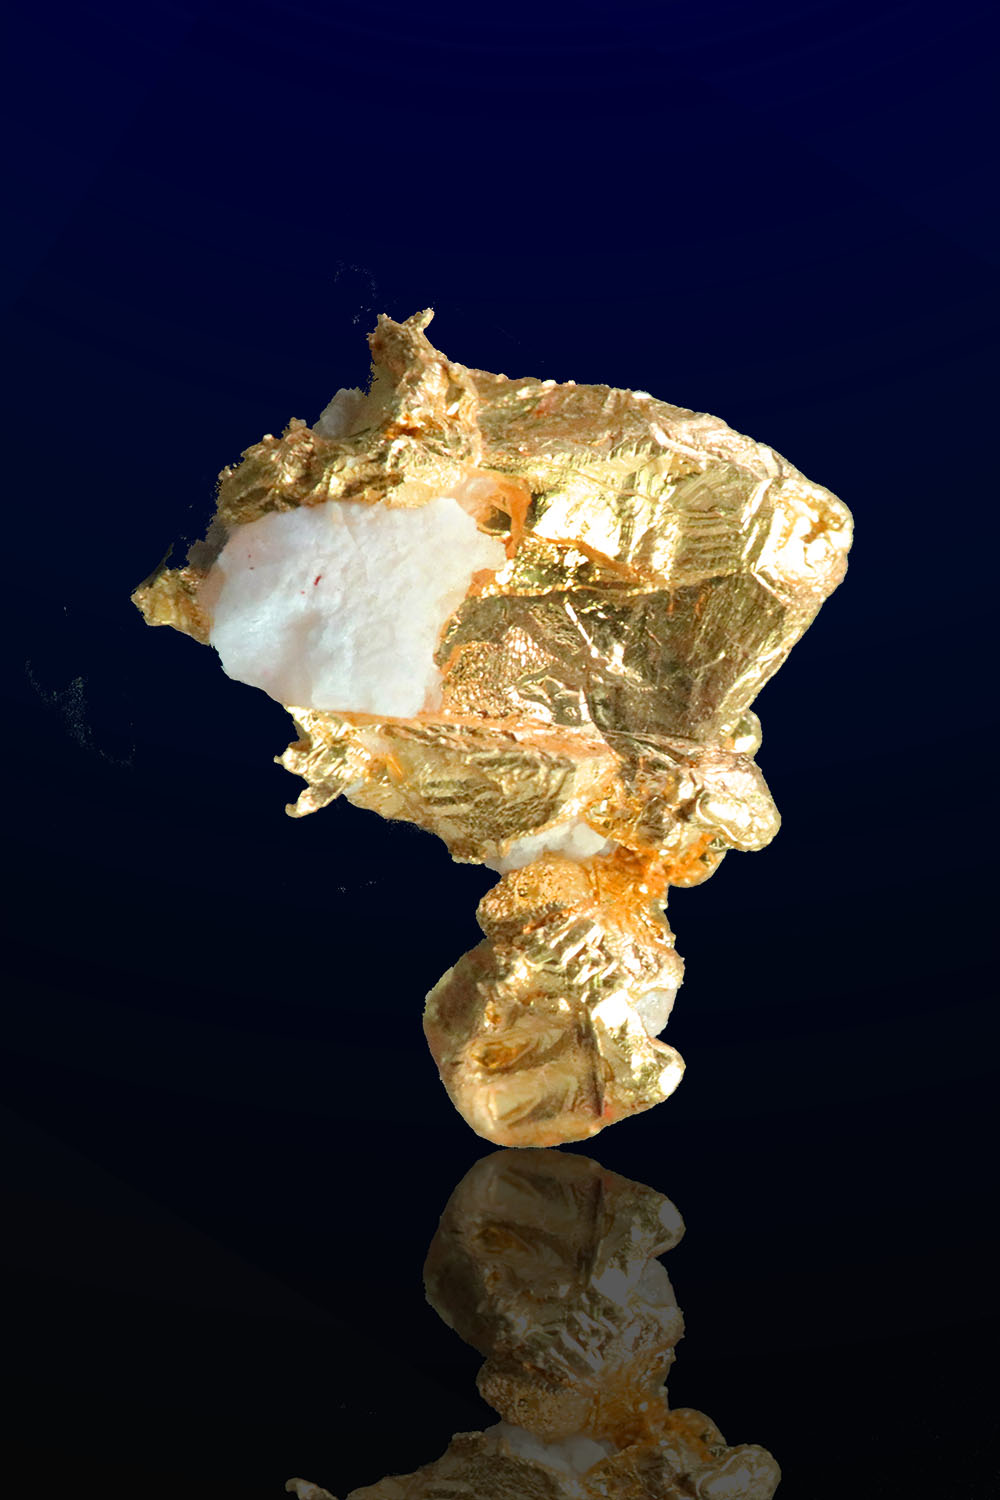 Colorado Quartz Mine - Mariposa County - Gold Quartz Crystal